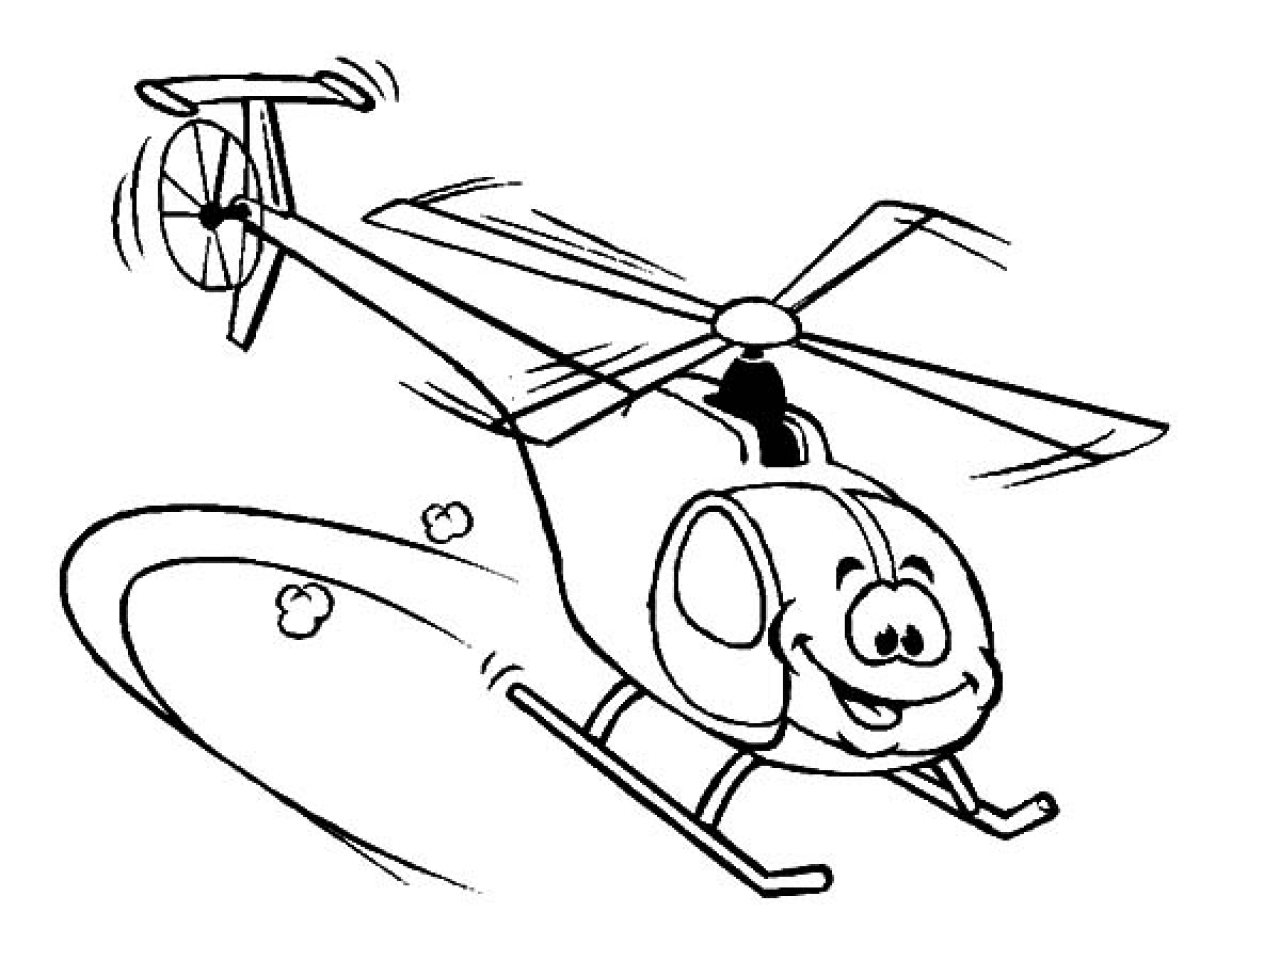 Helicopter Drawing For Kids At Getdrawings